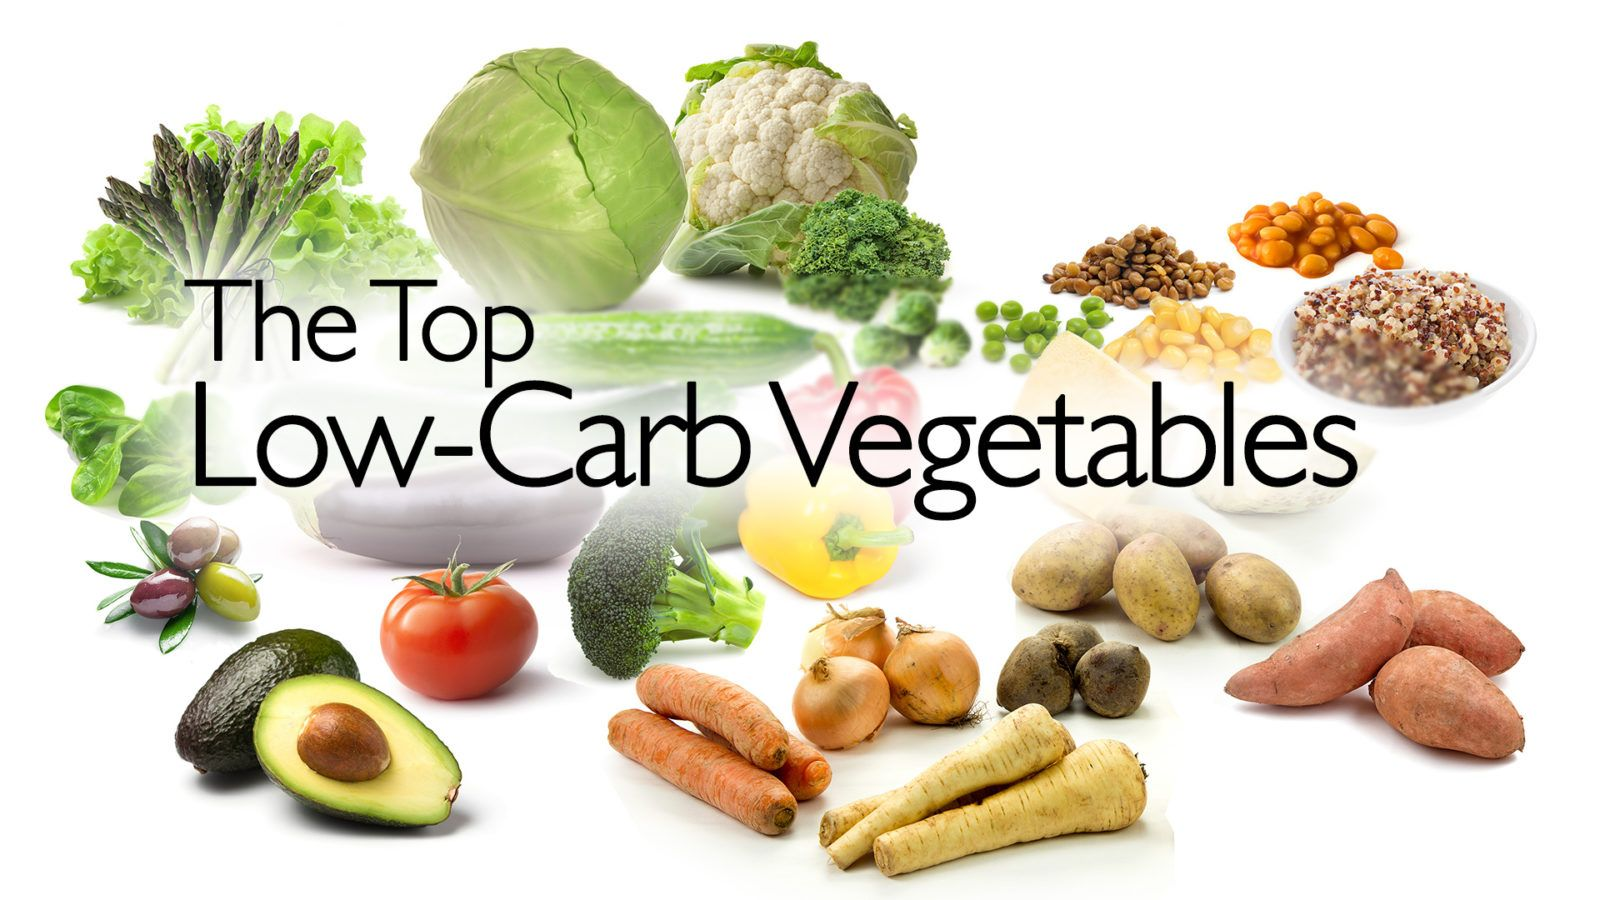 Top Low-Carb Vegetables